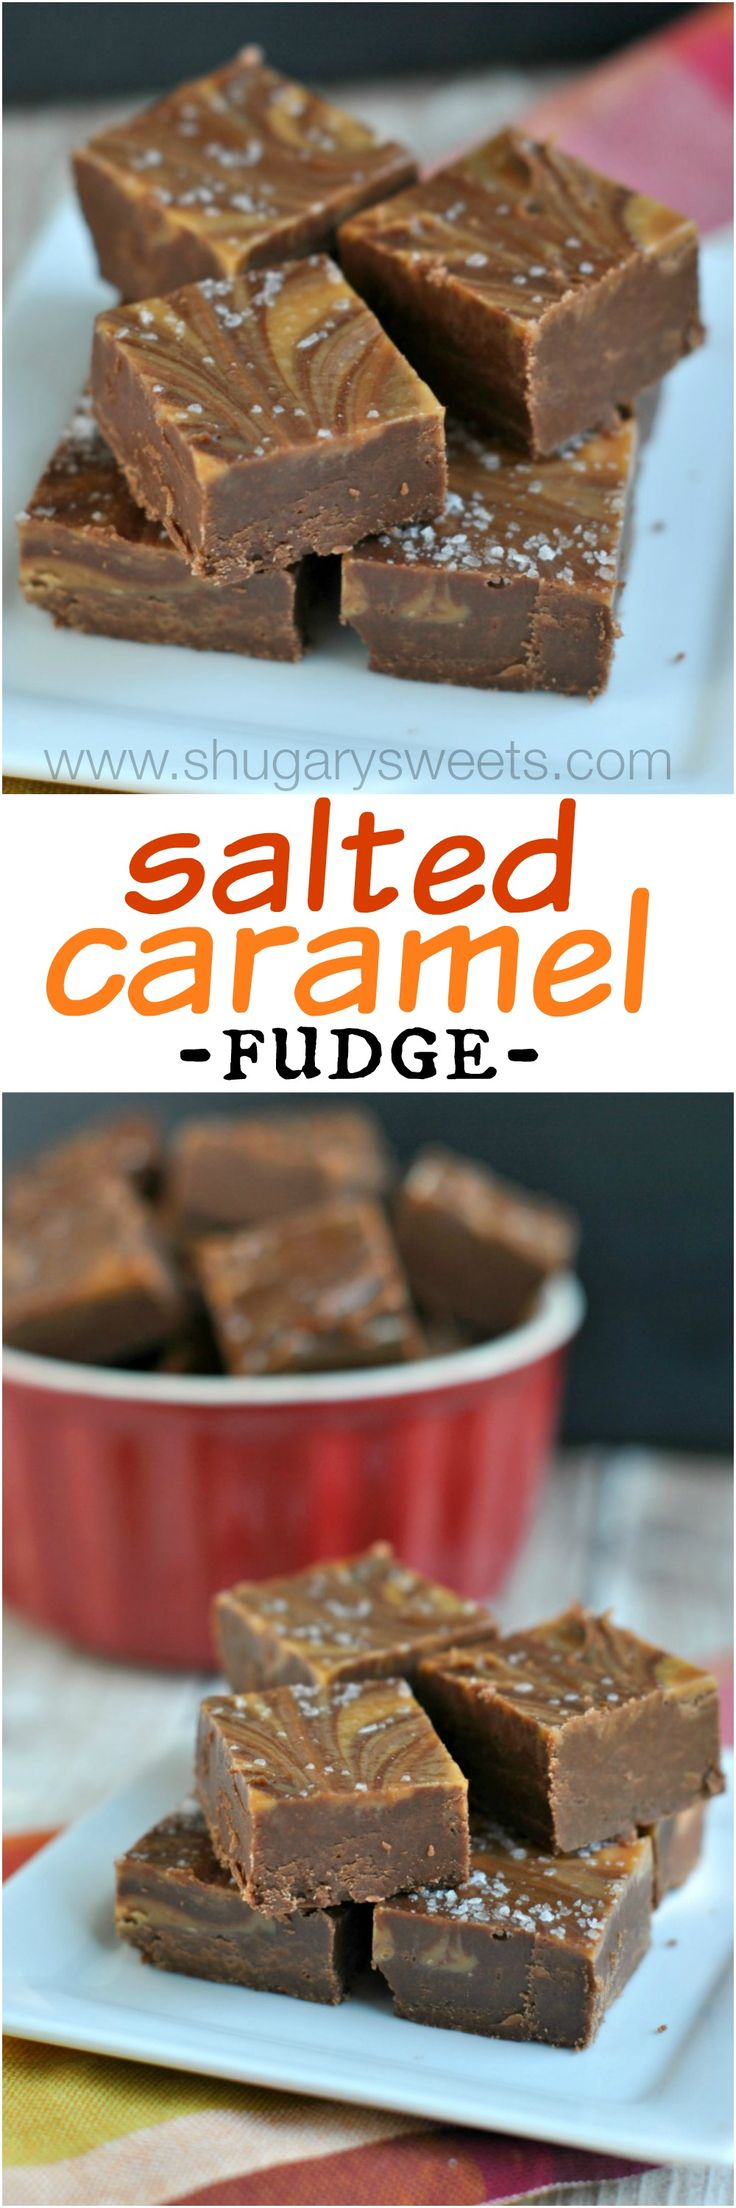 Salted Caramel Mocha Fudge: delicious recipe for a fun treat any time of year!